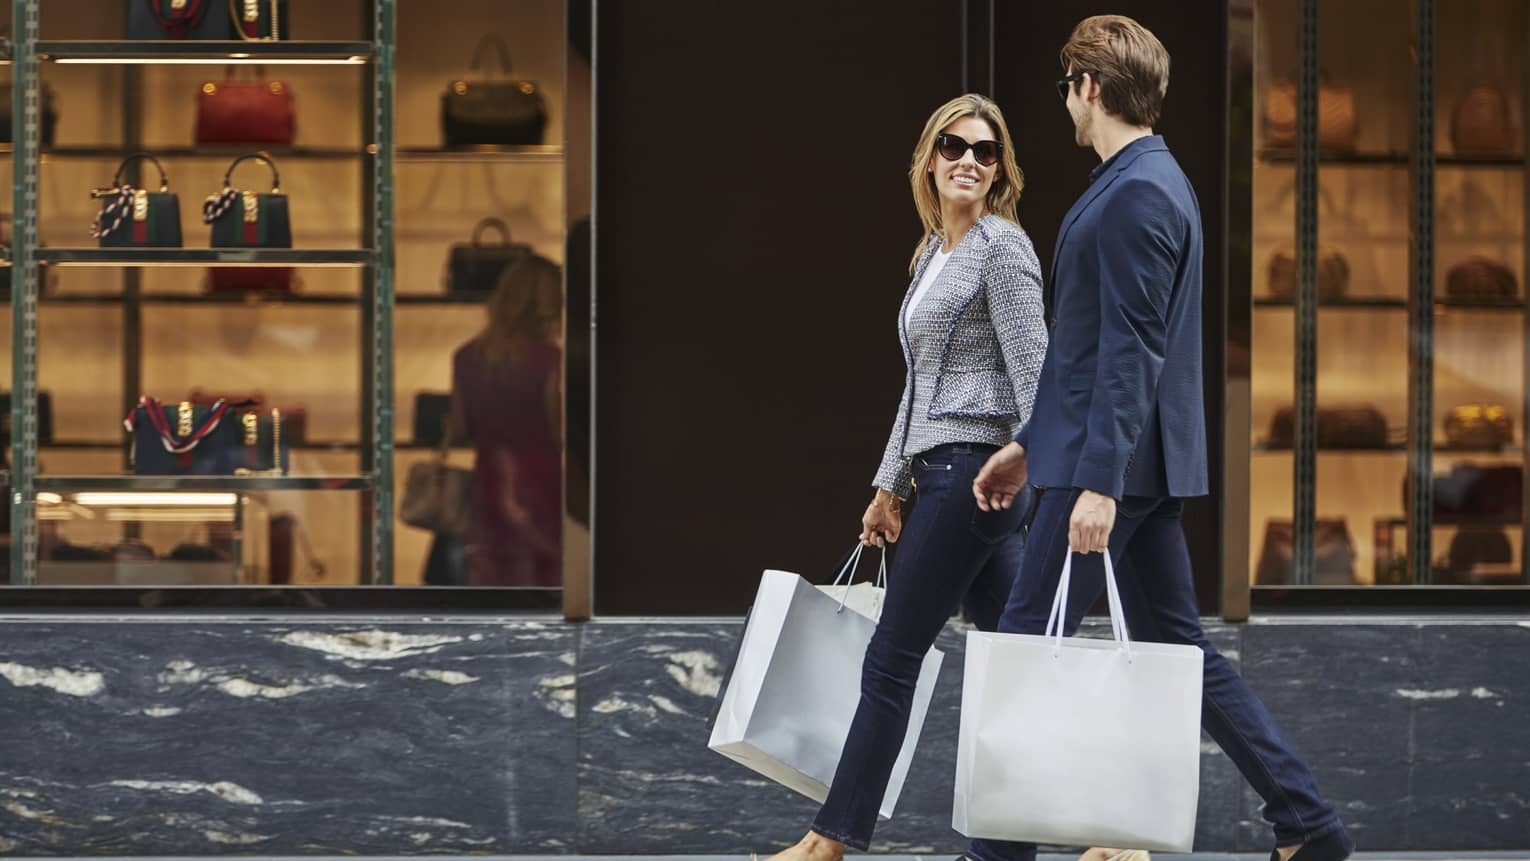 Man and woman walk down street, carry large paper shopping bags